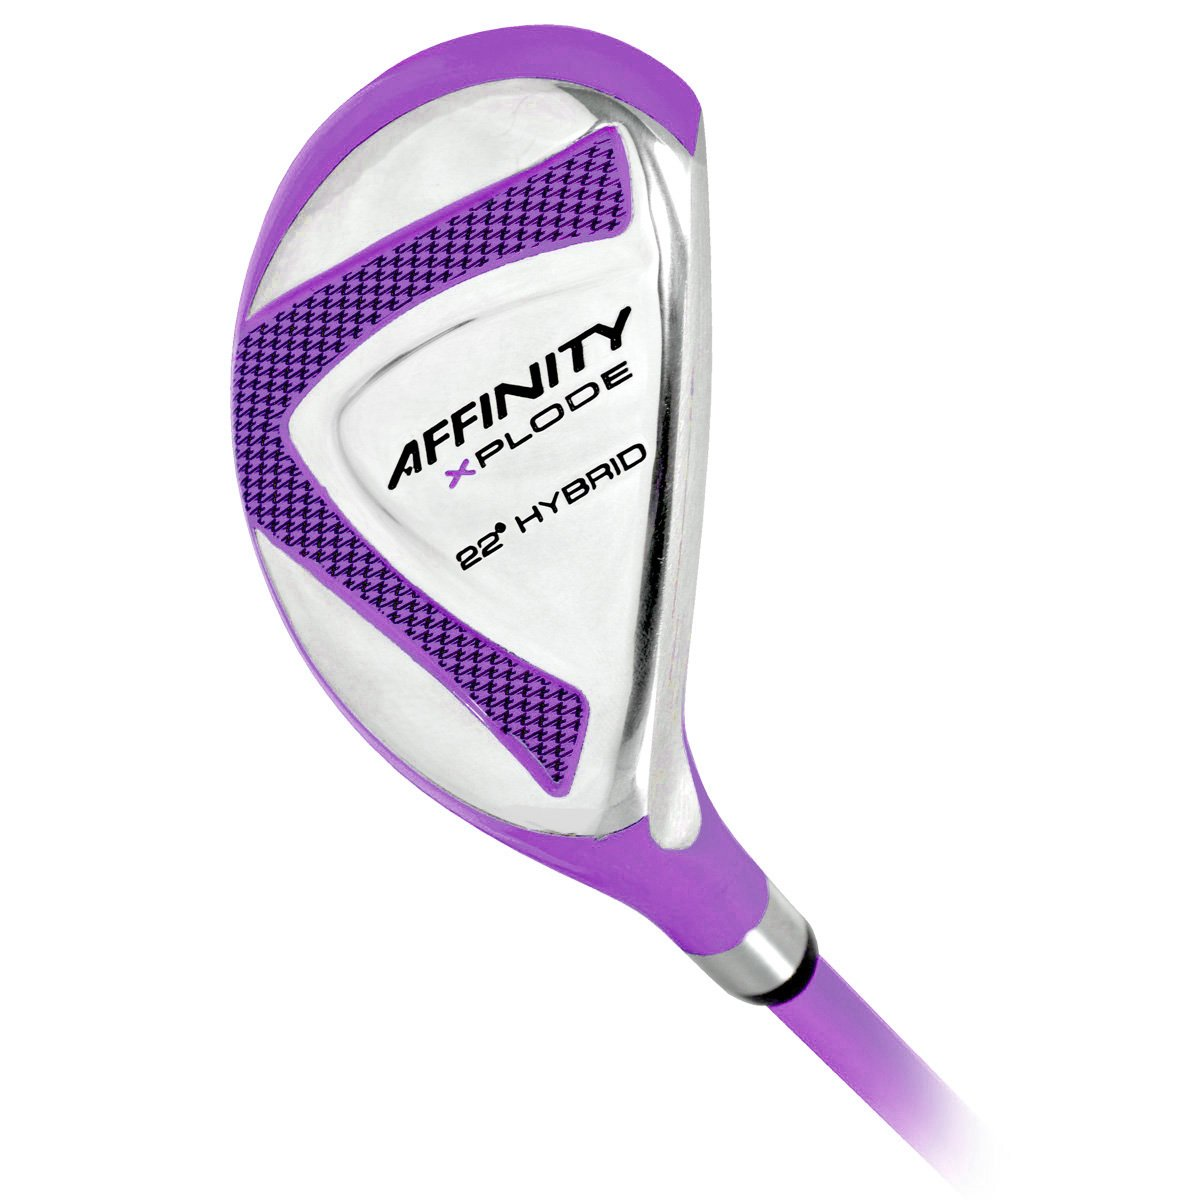 AFFINITY Women's Golf Xplode 4 Hybrid Club Set, Ladies Flex, Right Hand, Purple